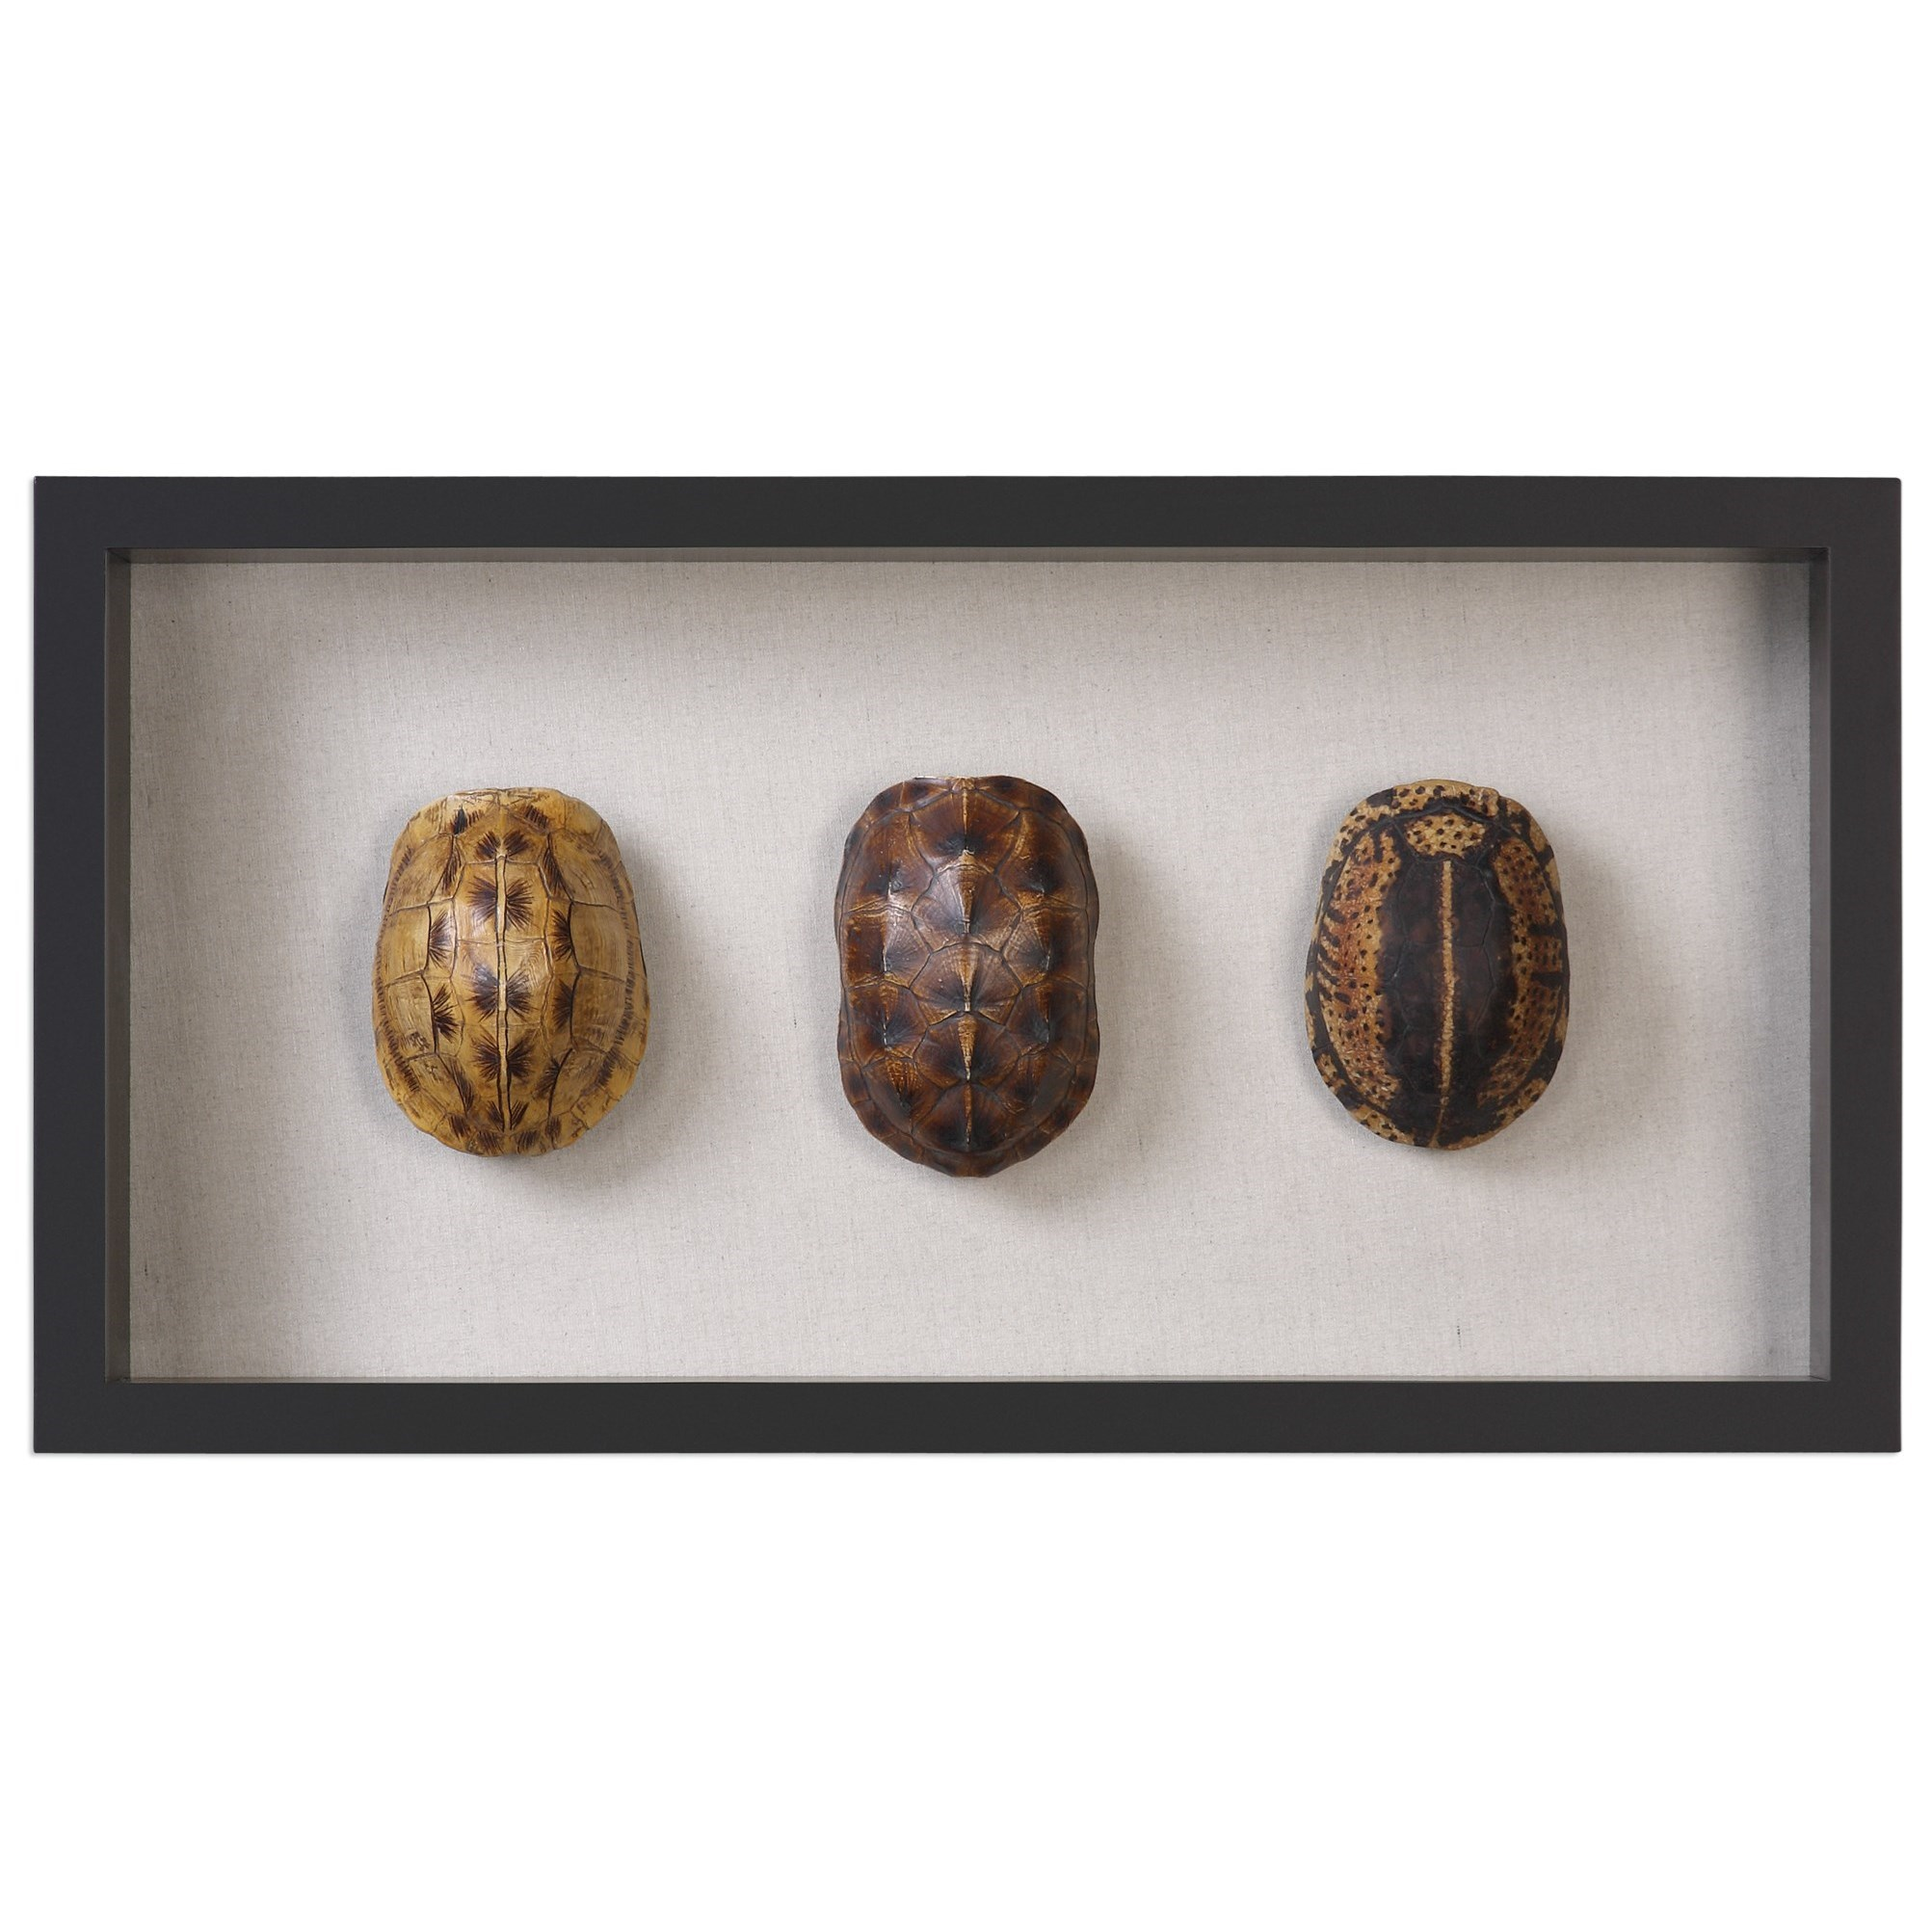 Uttermost Alternative Wall Decor Tortoise Shells Shadow Box - Item Number: 04068